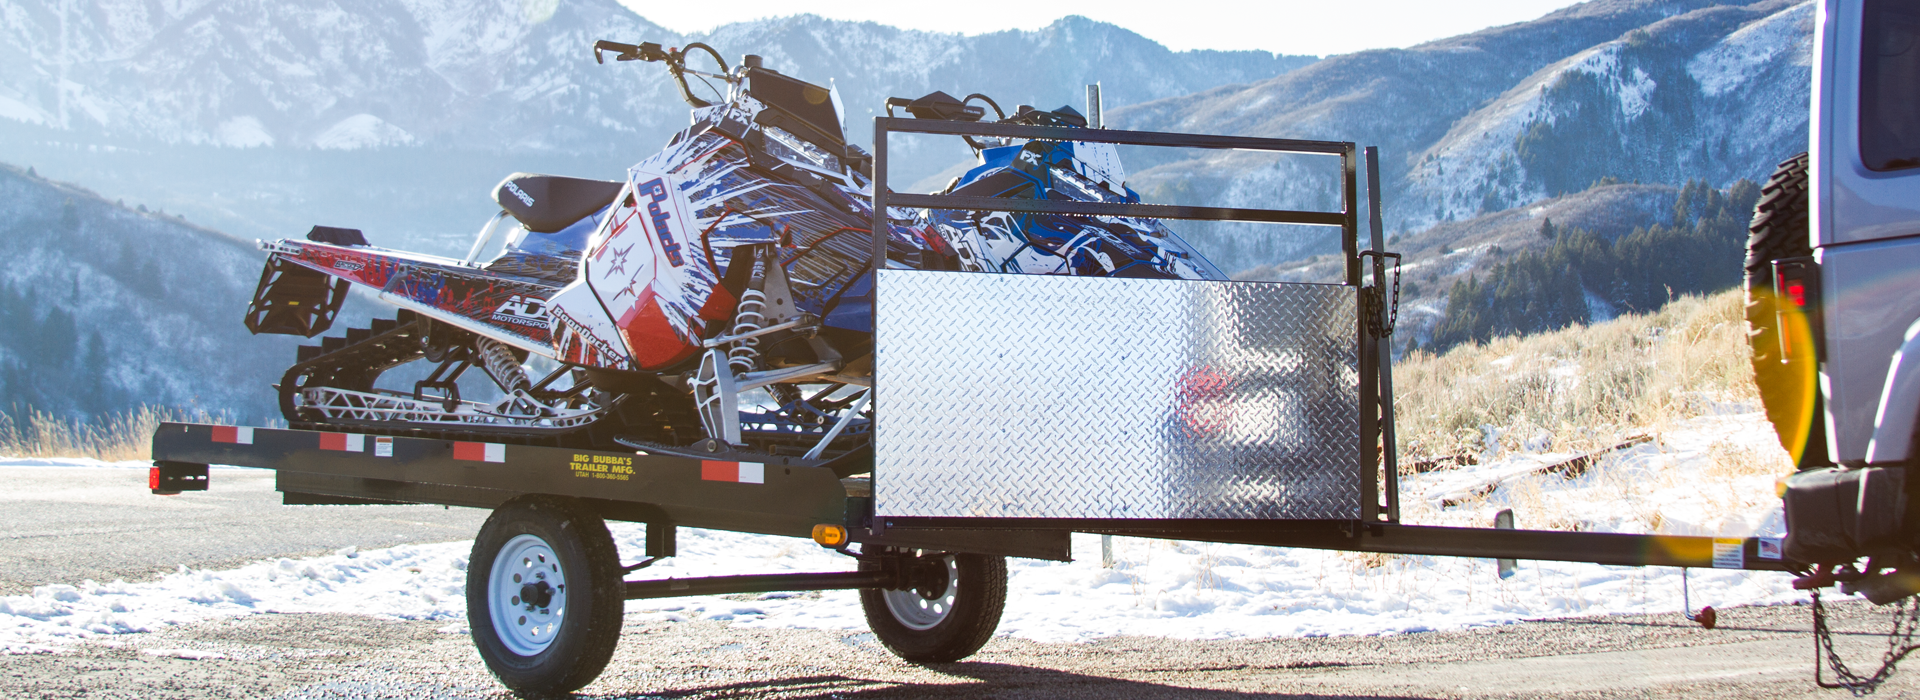 Big Bubba's Snowmobile Trailer